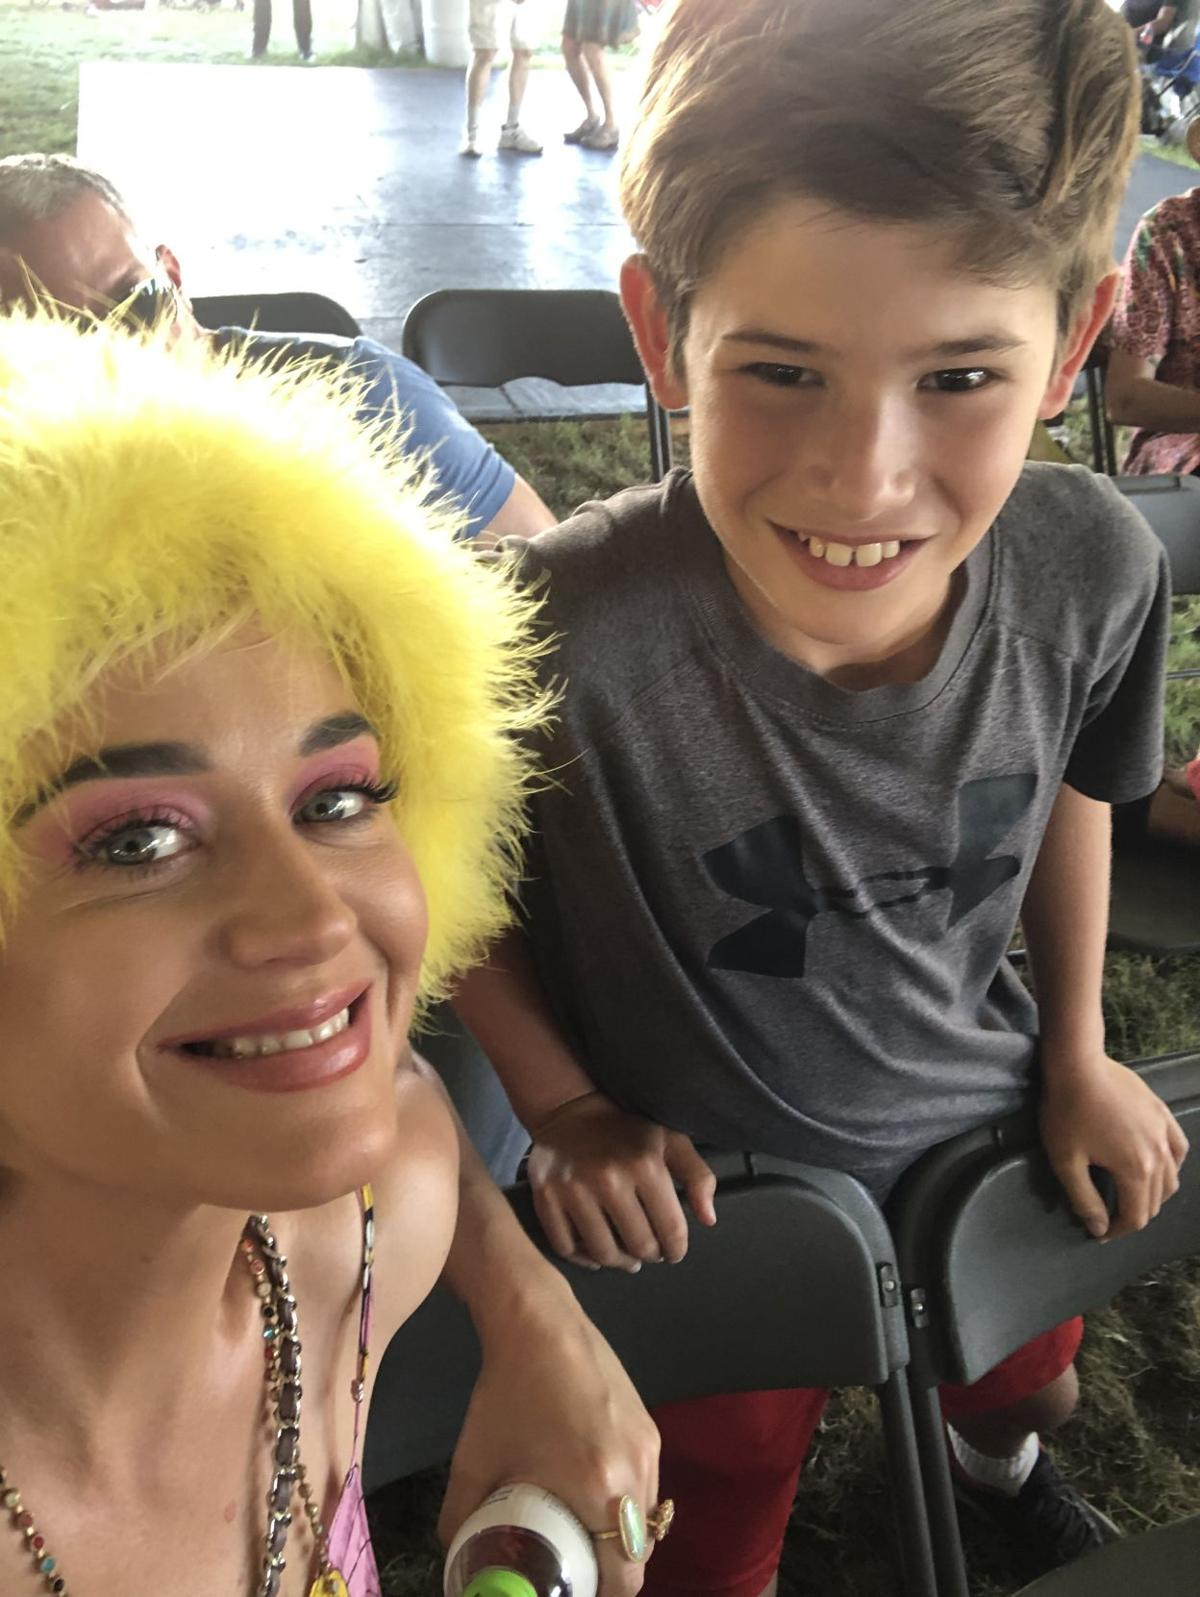 Katy Perry at Jazz Fest with fan